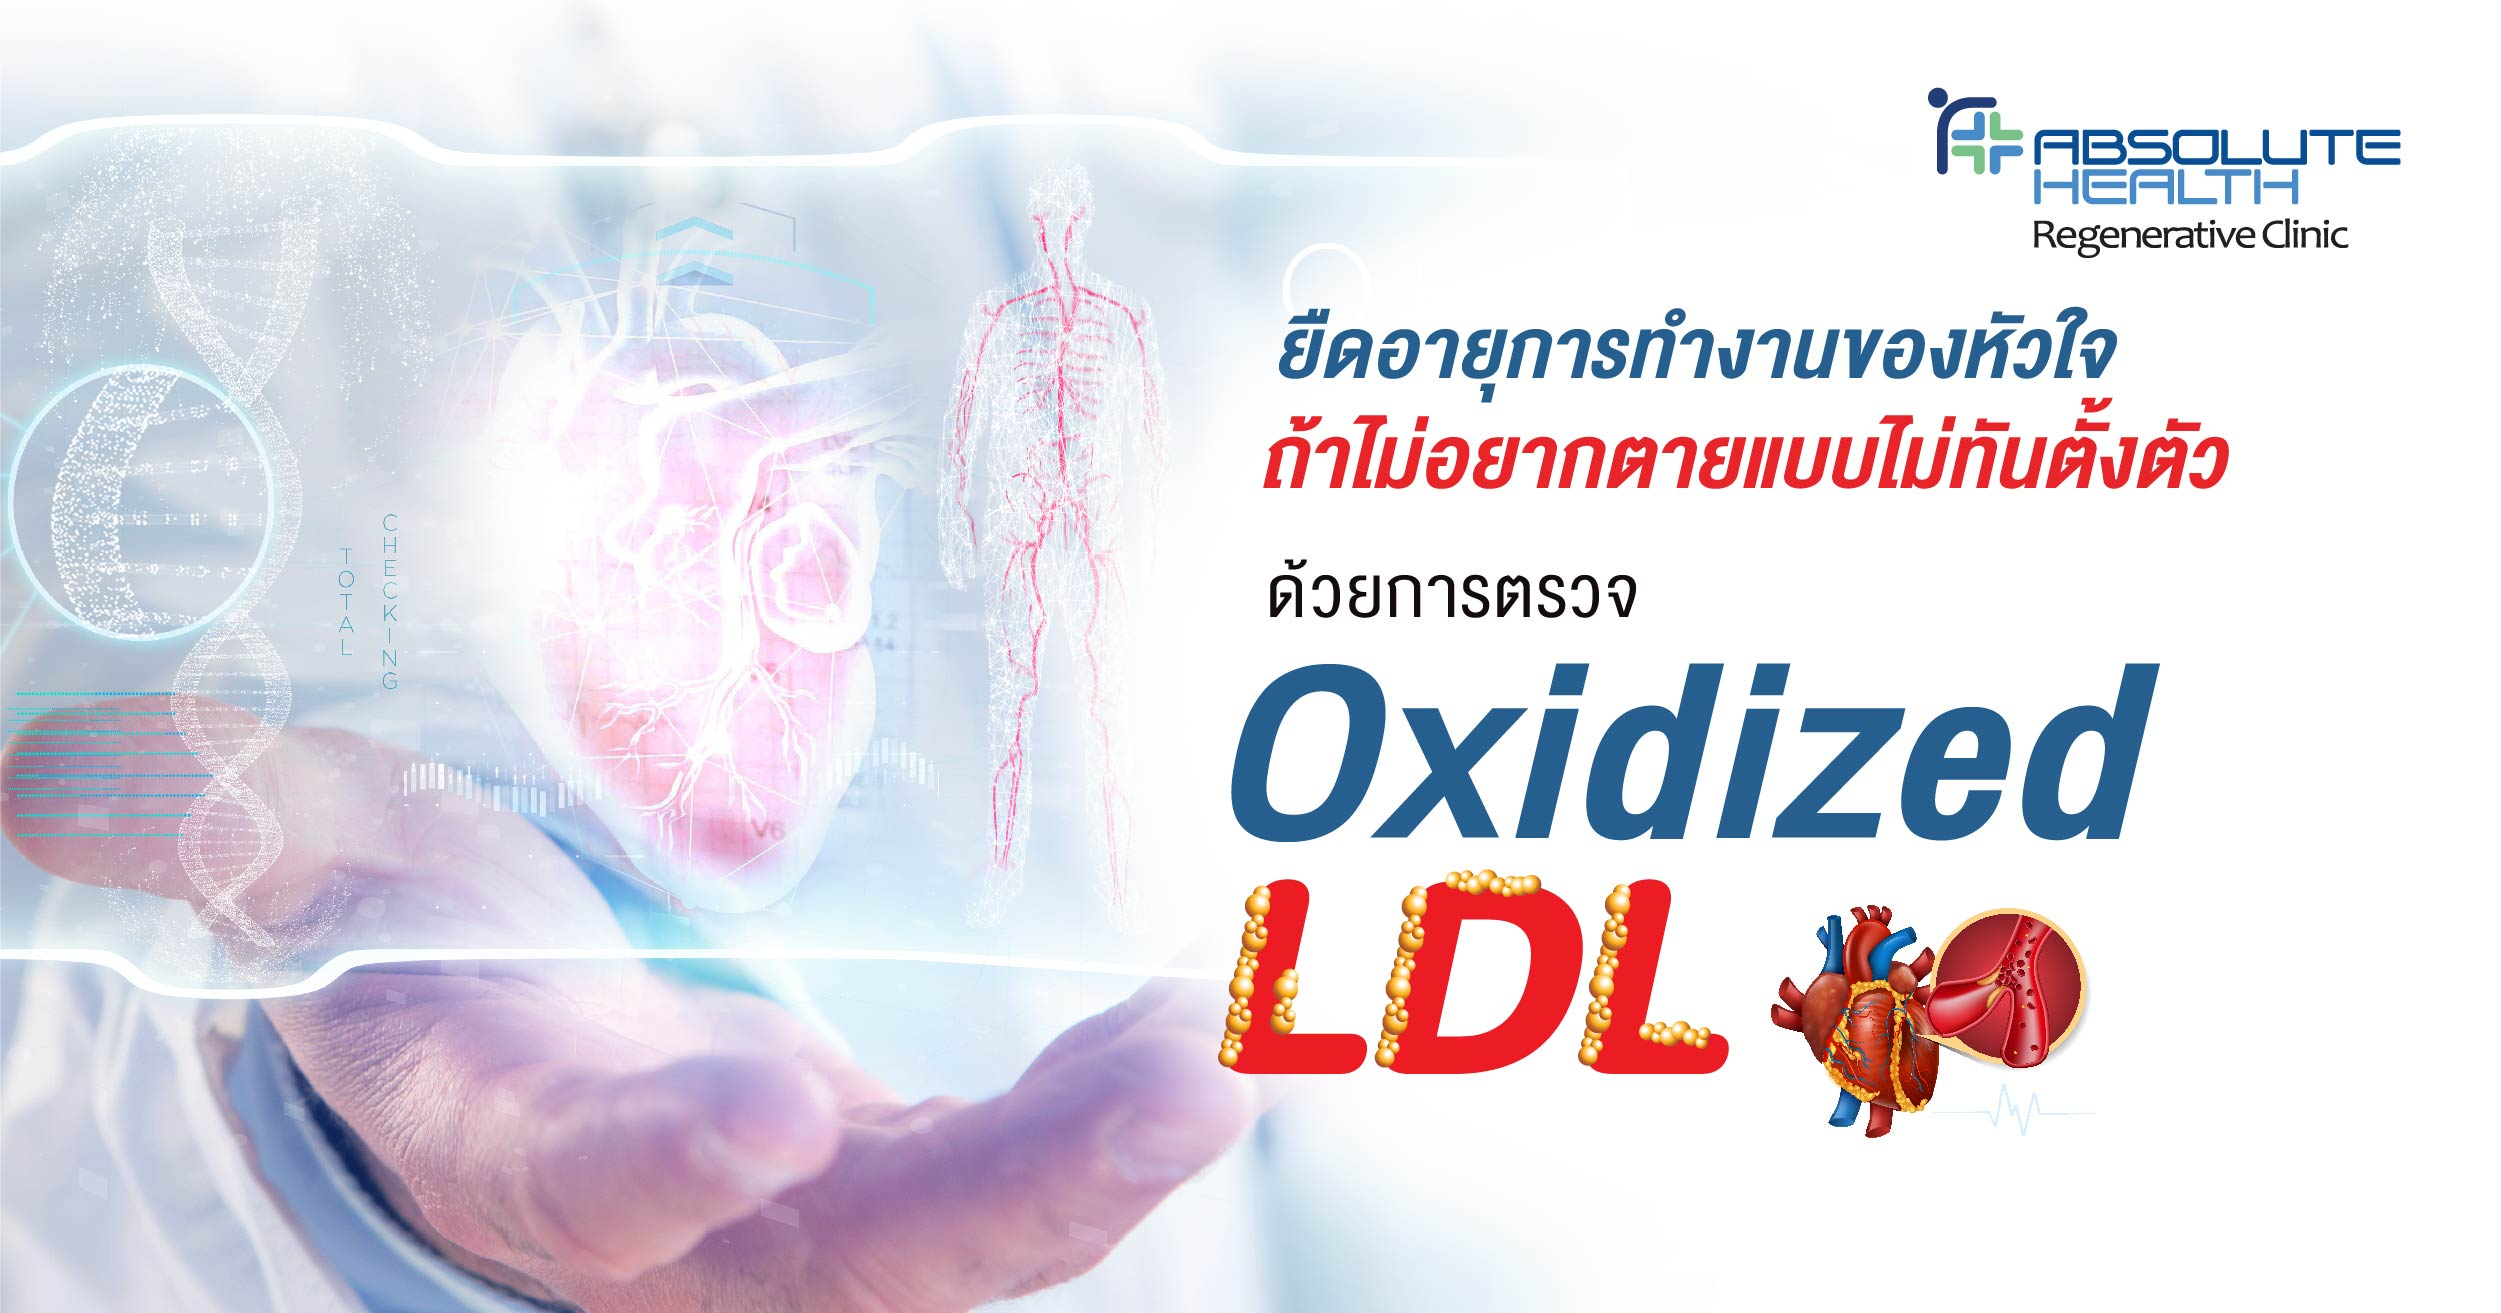 Oxidized LDL test – Prolonging the lifespan of the heart and avoid sudden death